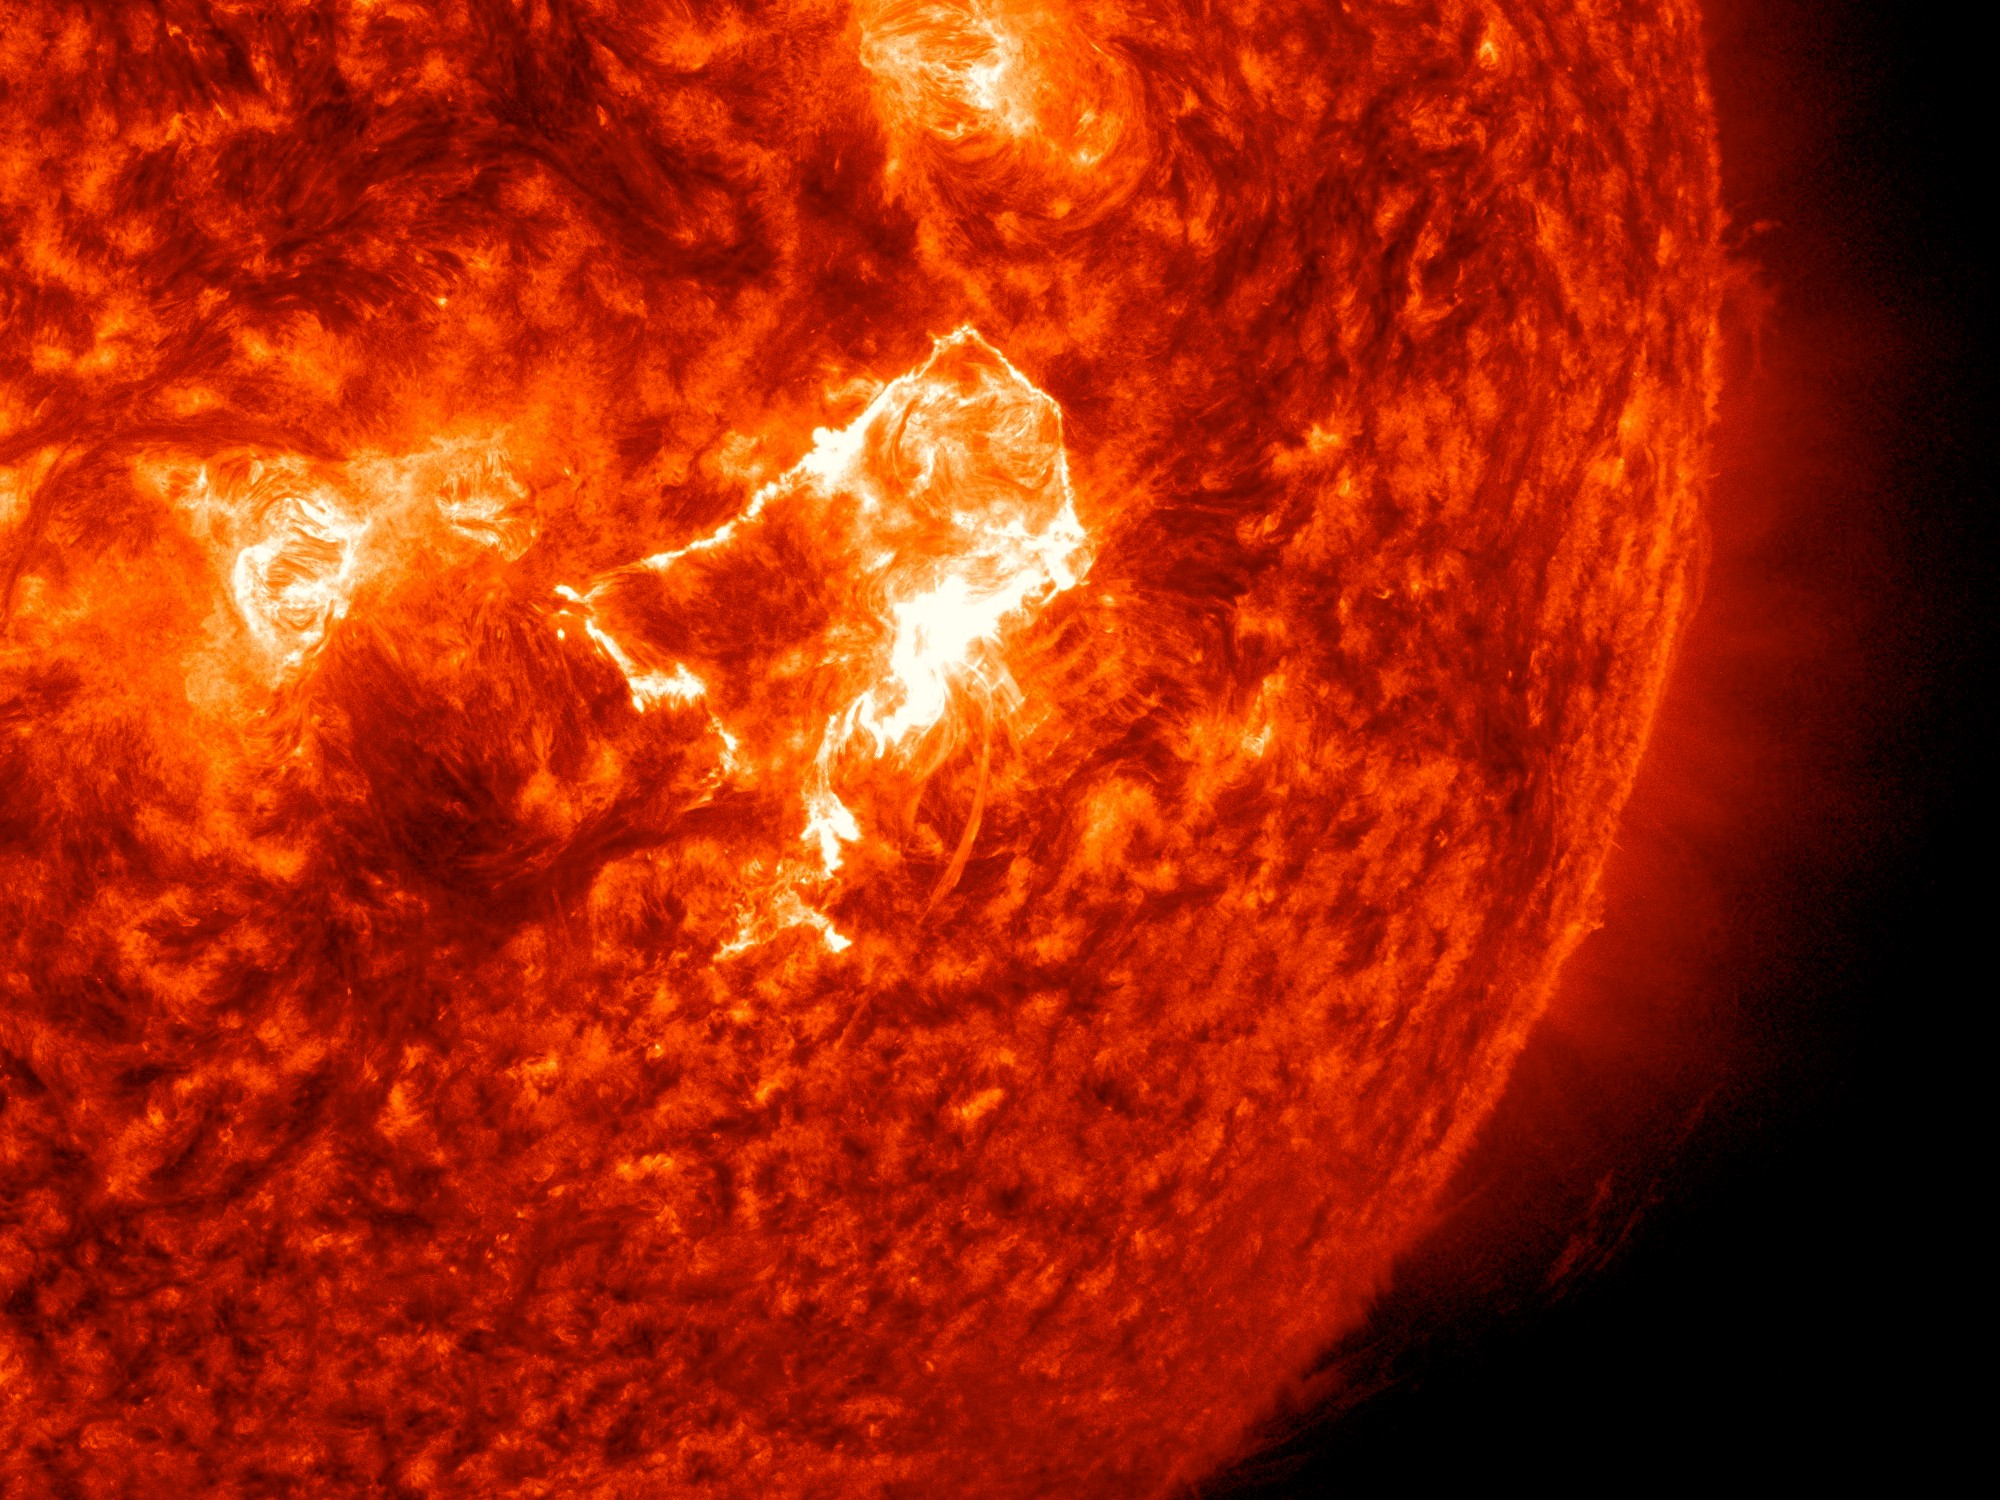 solar flares today nasa warning - photo #8